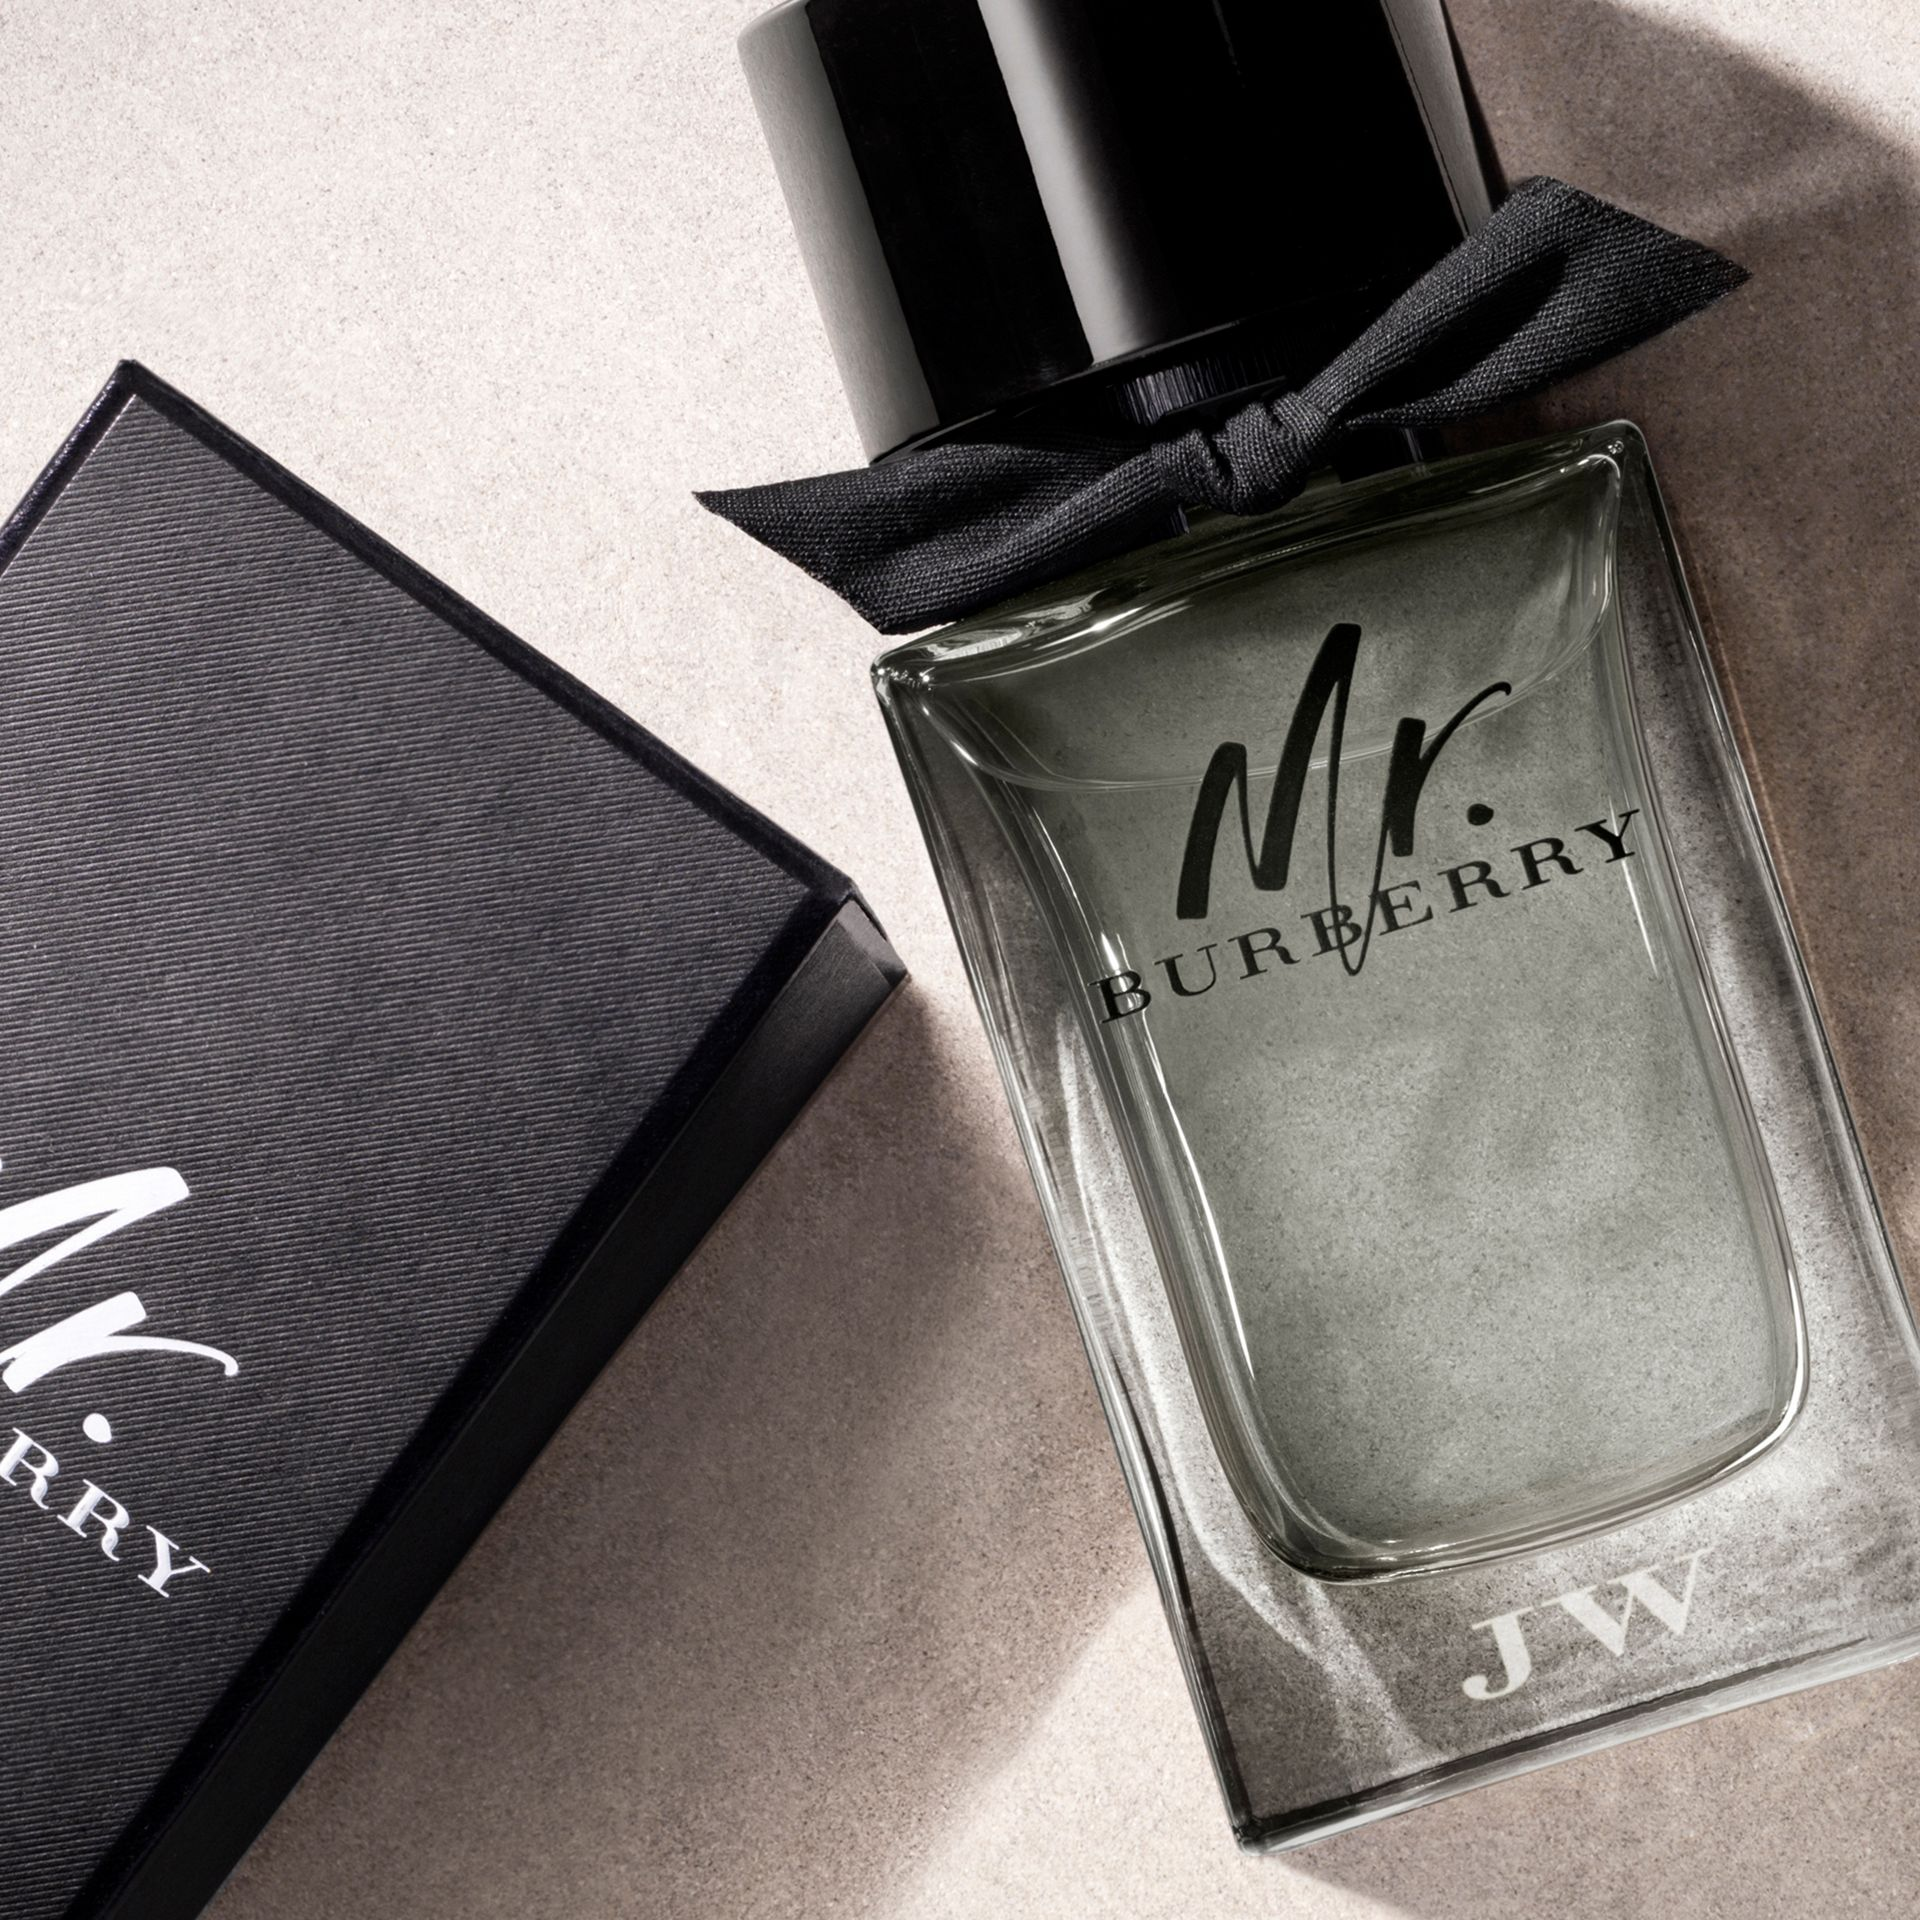 Mr. Burberry Eau de Toilette Luxury Set - gallery image 2